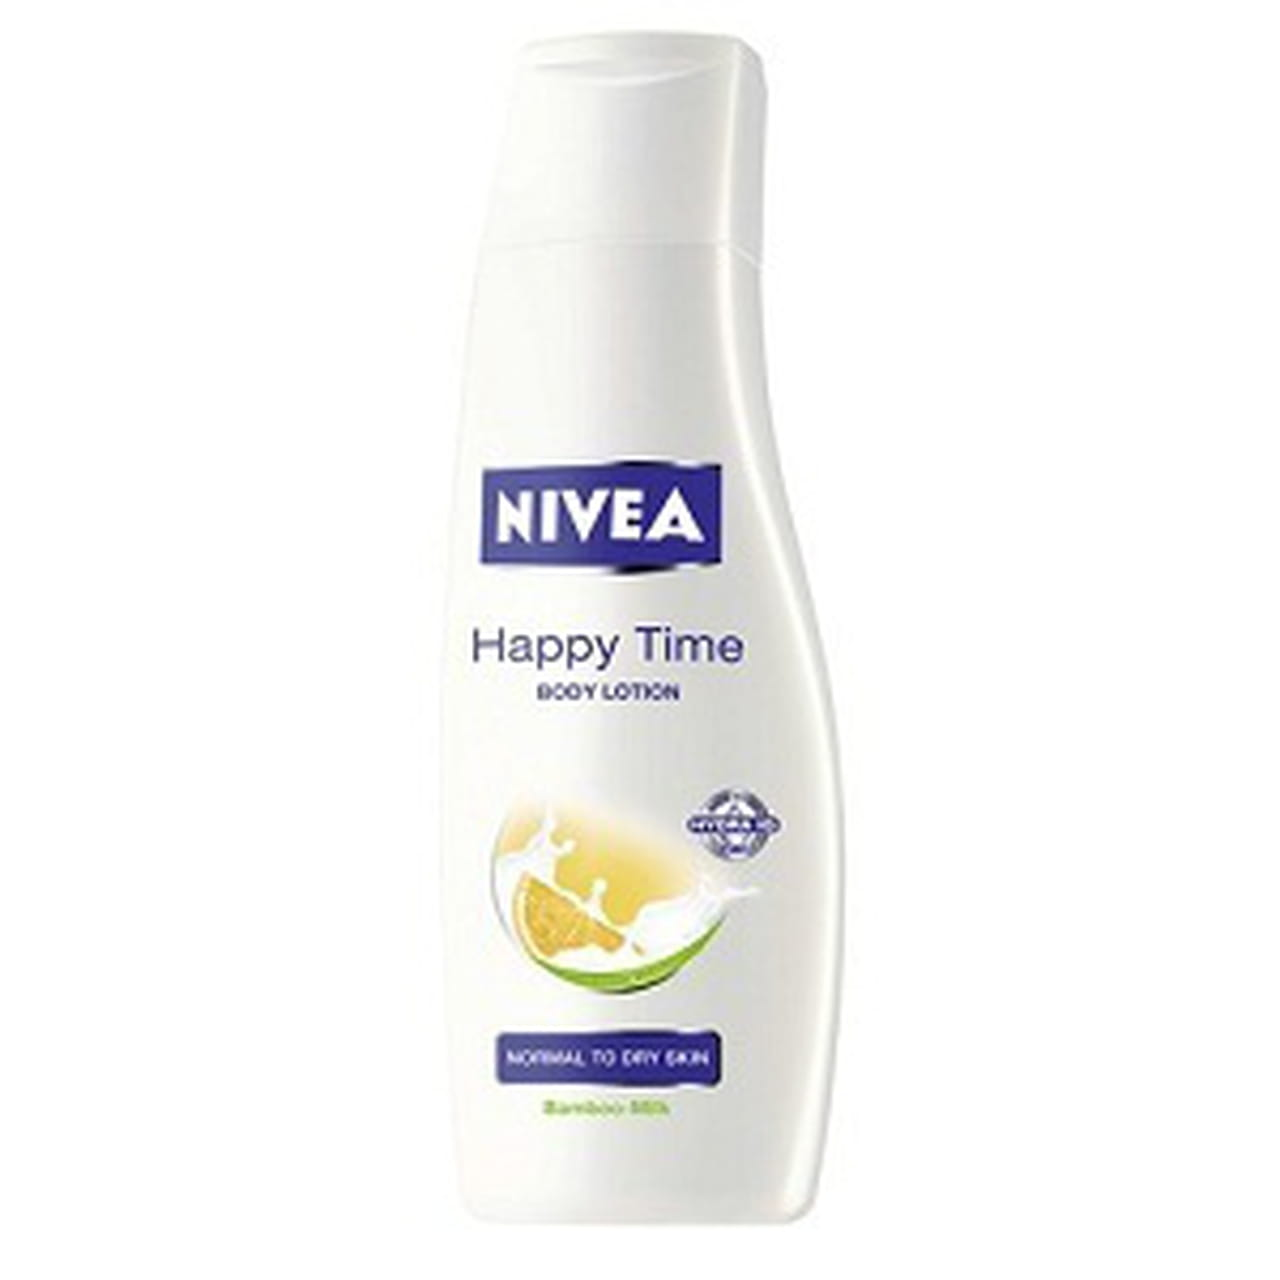 9fcd80cf5 1- Nivea Happy Time Body Lotion